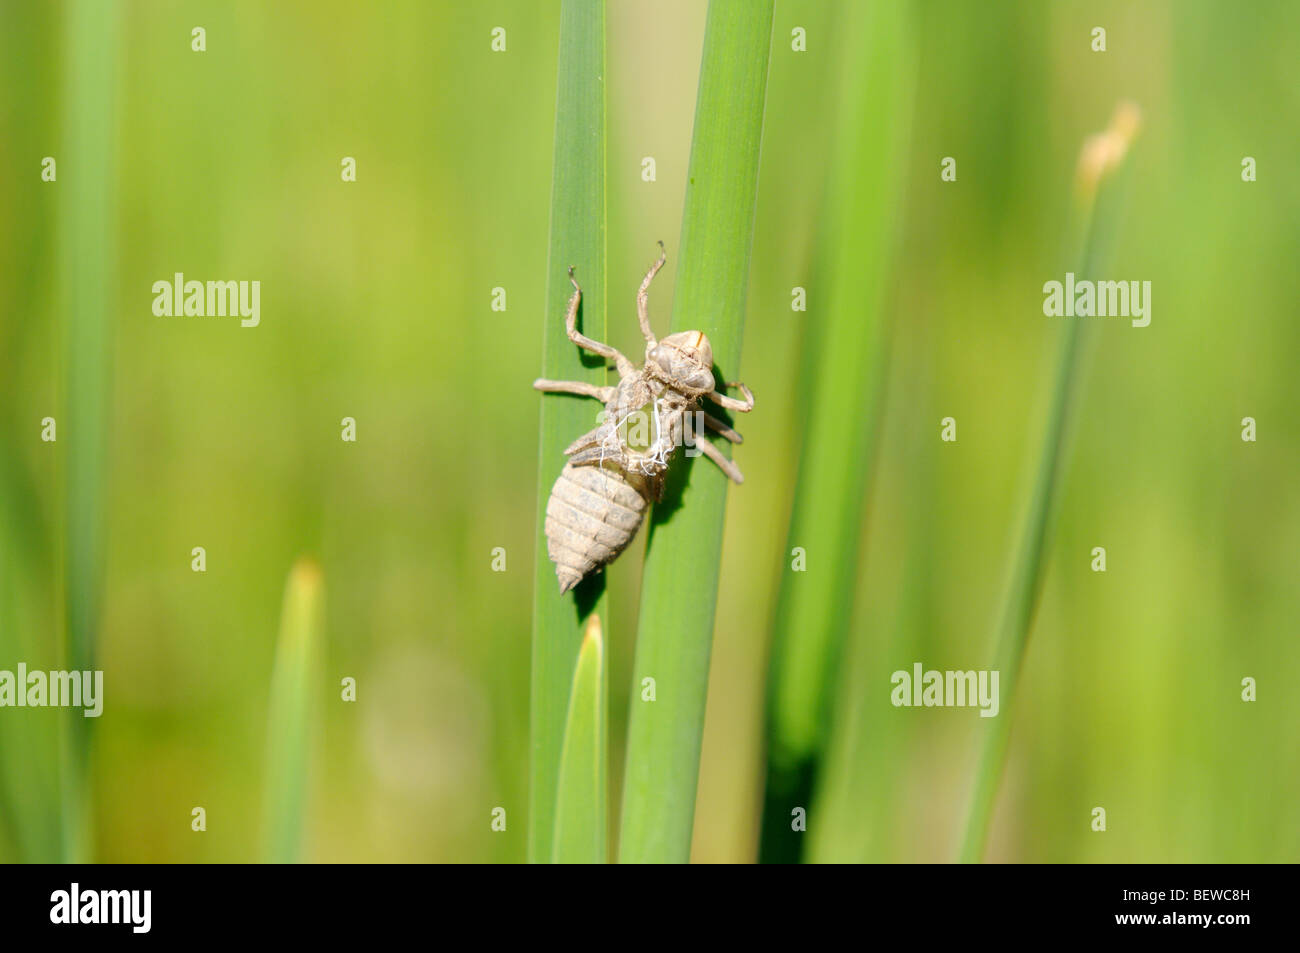 Dragonfly sitting on a blade of grass, close-up - Stock Image